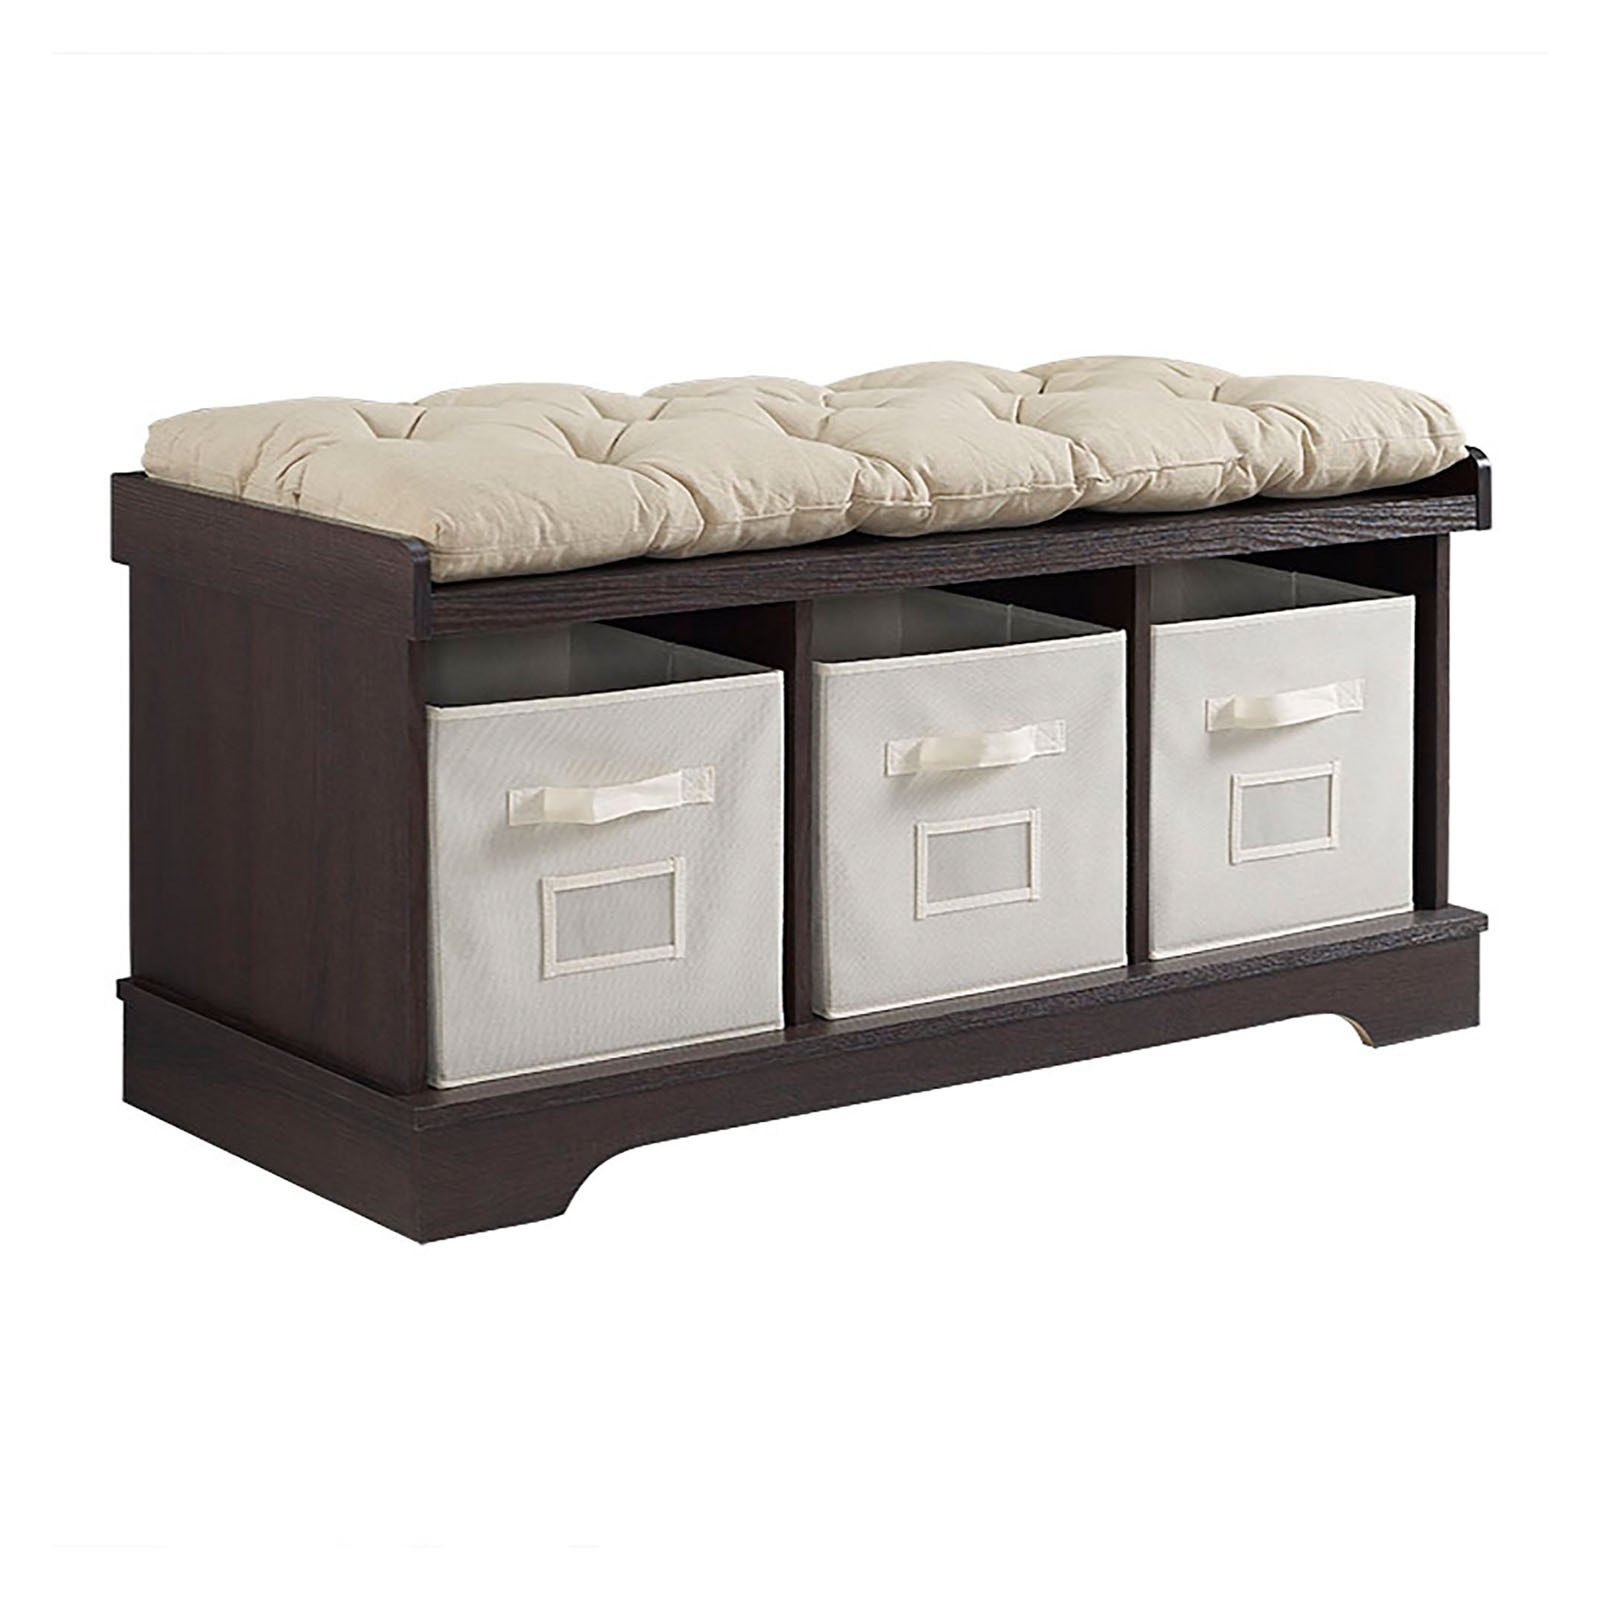 Walker Edison 42 in. Wood Storage Bench with Totes and Cushion